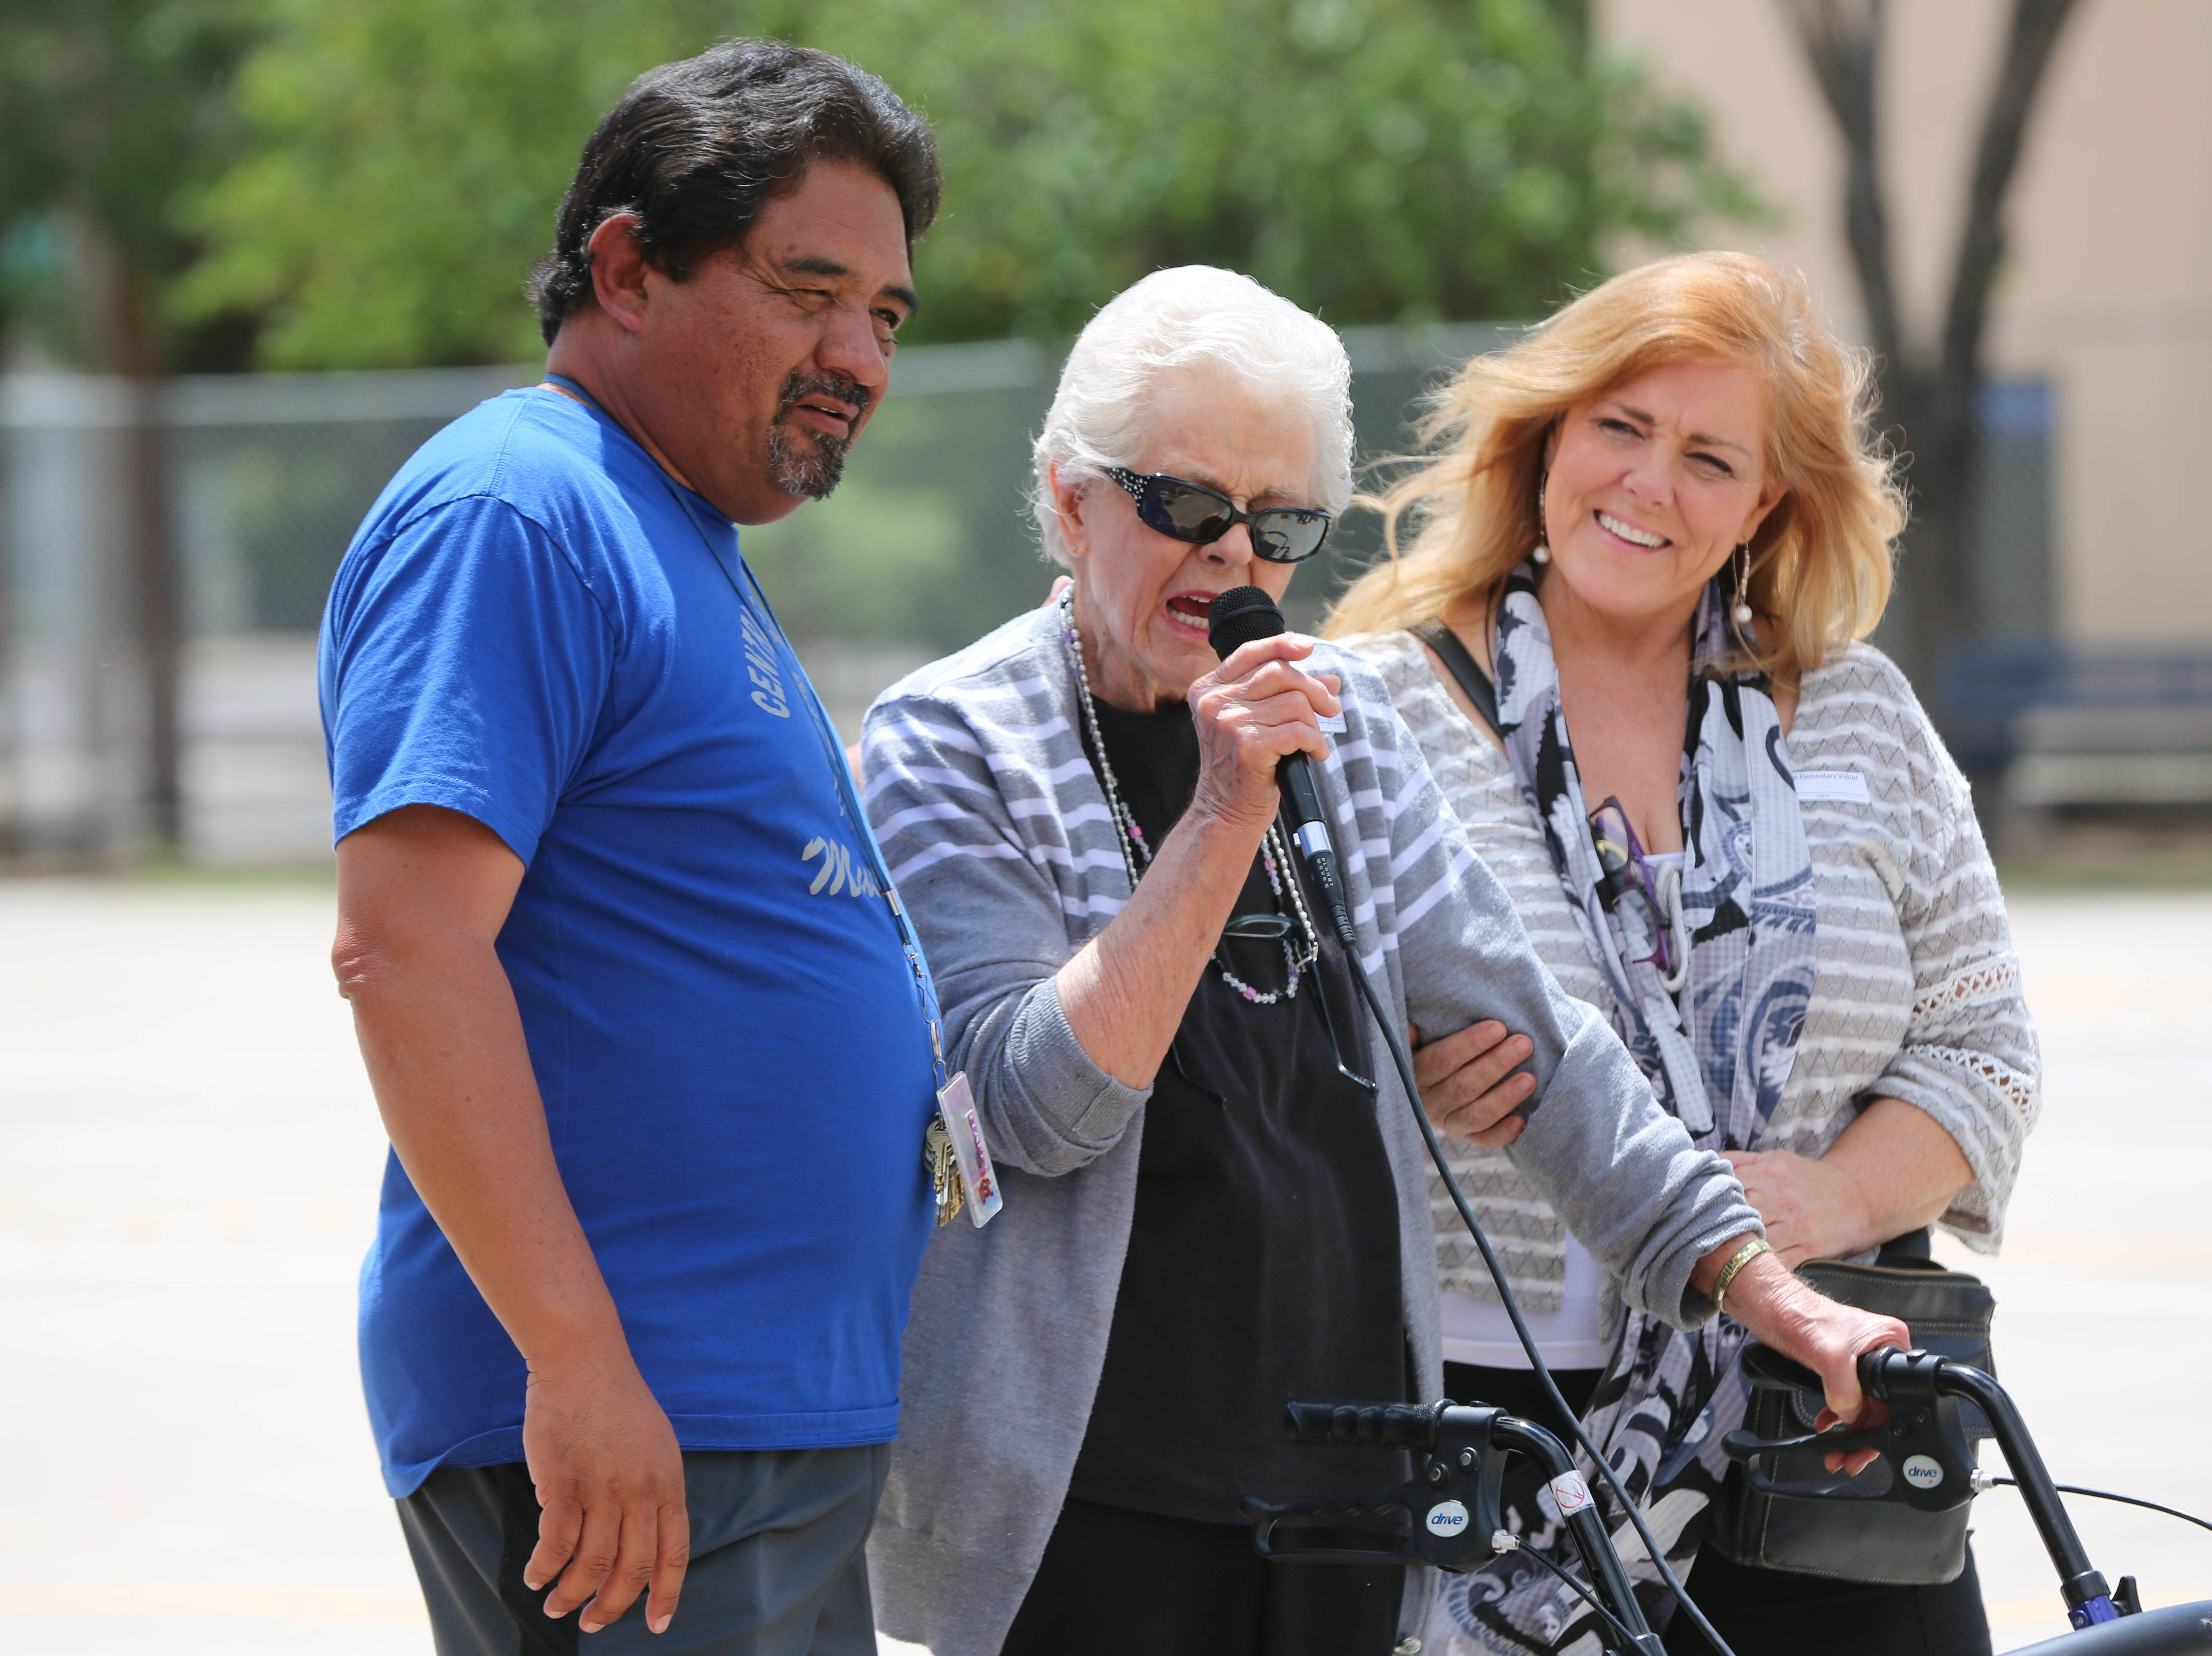 Sylvia Vaughn, center, was a fifth-grade teacher at Central Elementary School from 1968 to 1978. She visited the school during its 70th anniversary Wednesday, April 24. She stood with the help of Central Elementary School staff including P.E. teacher Tommy Esparza.